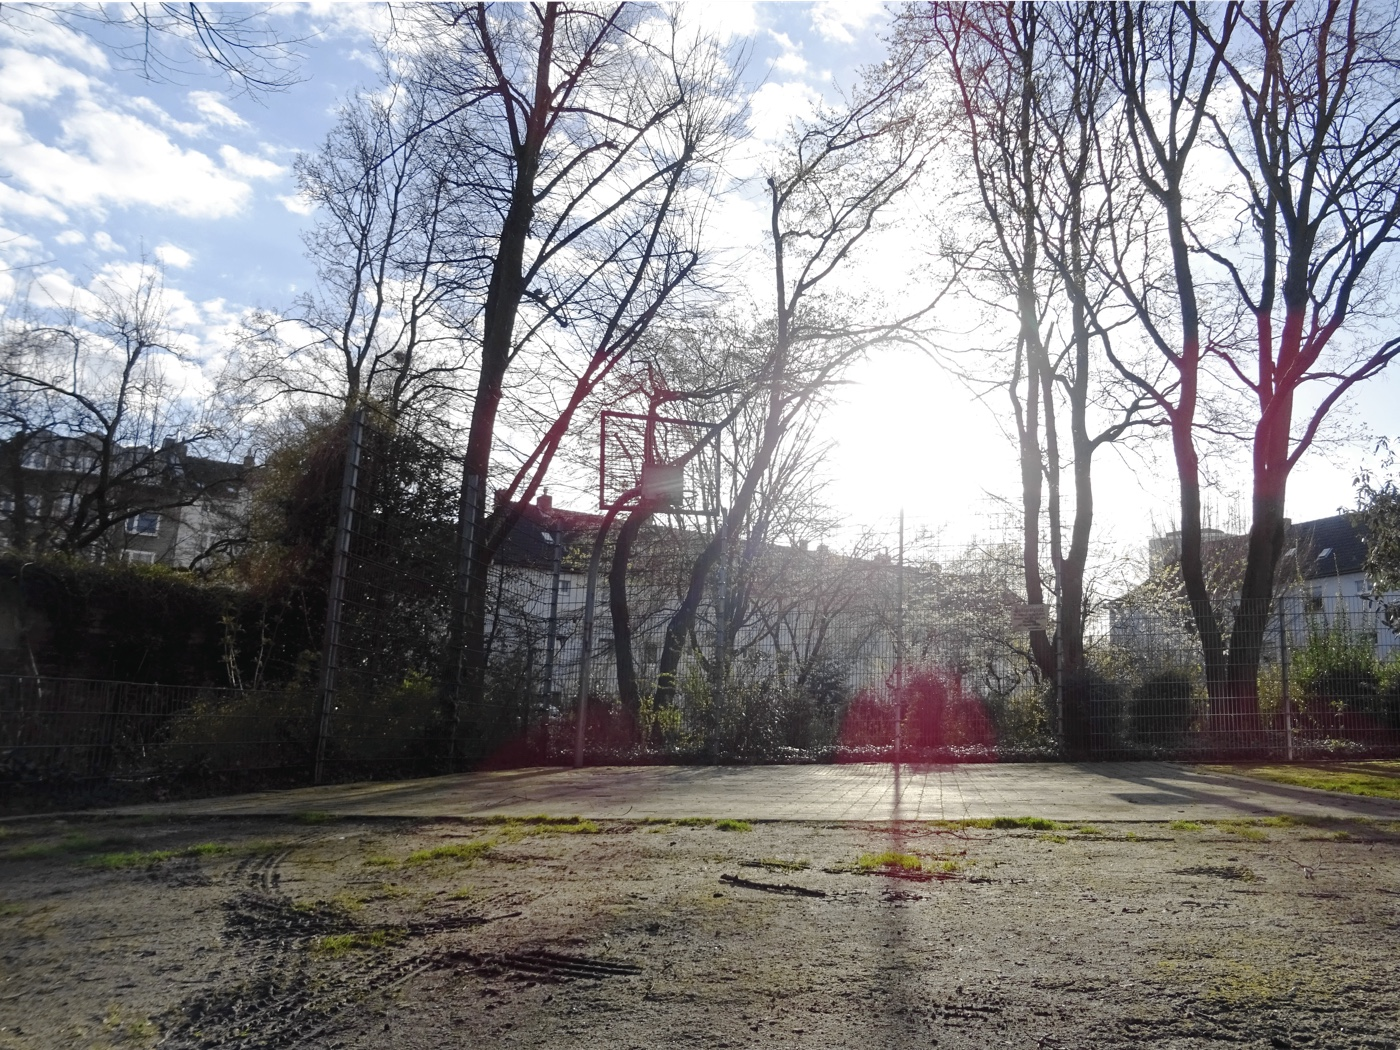 Basketball in Unterbilk.